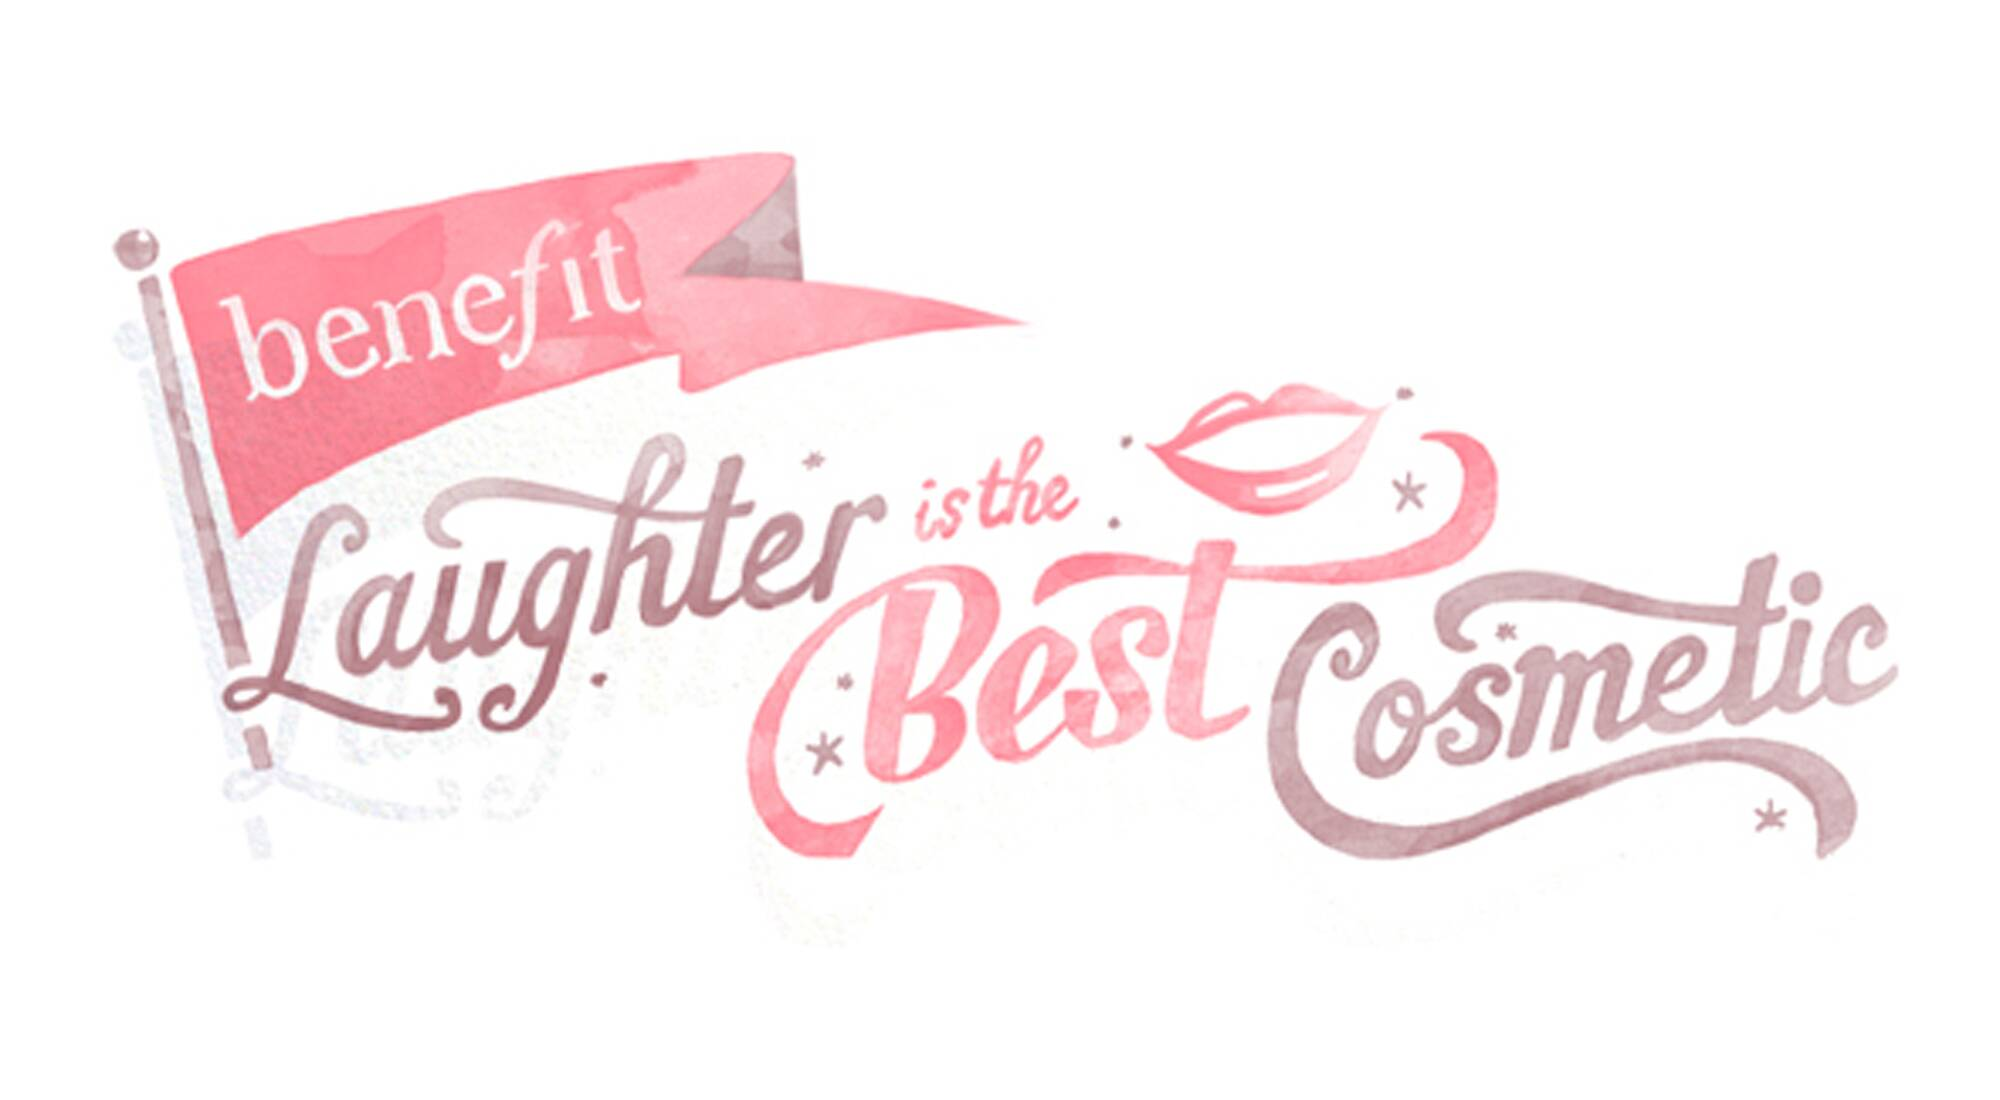 laughter is the best cosmetics lvmh